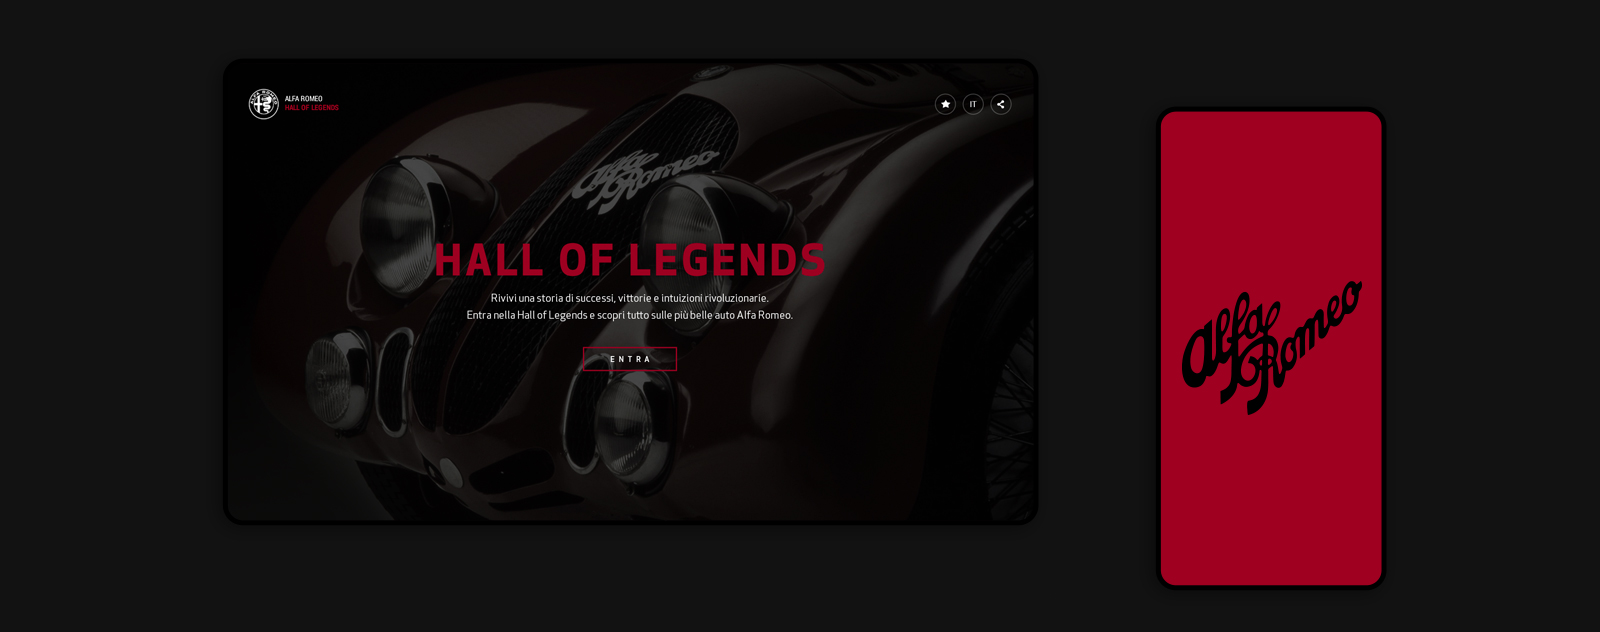 Hall of Legends - Alfa Romeo